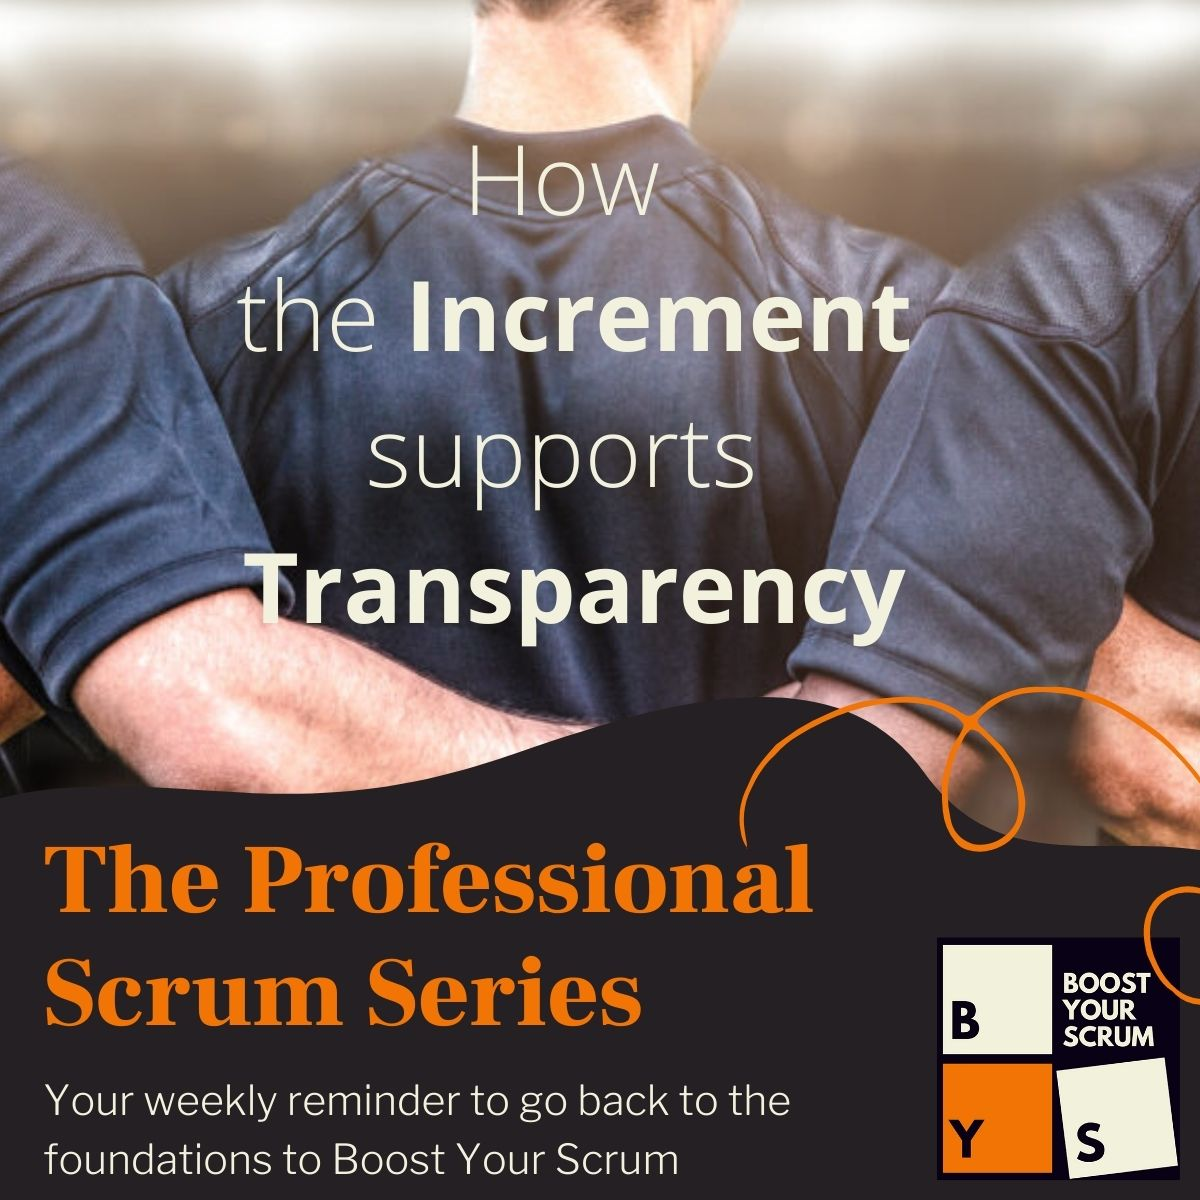 How the Increment brings Transparency